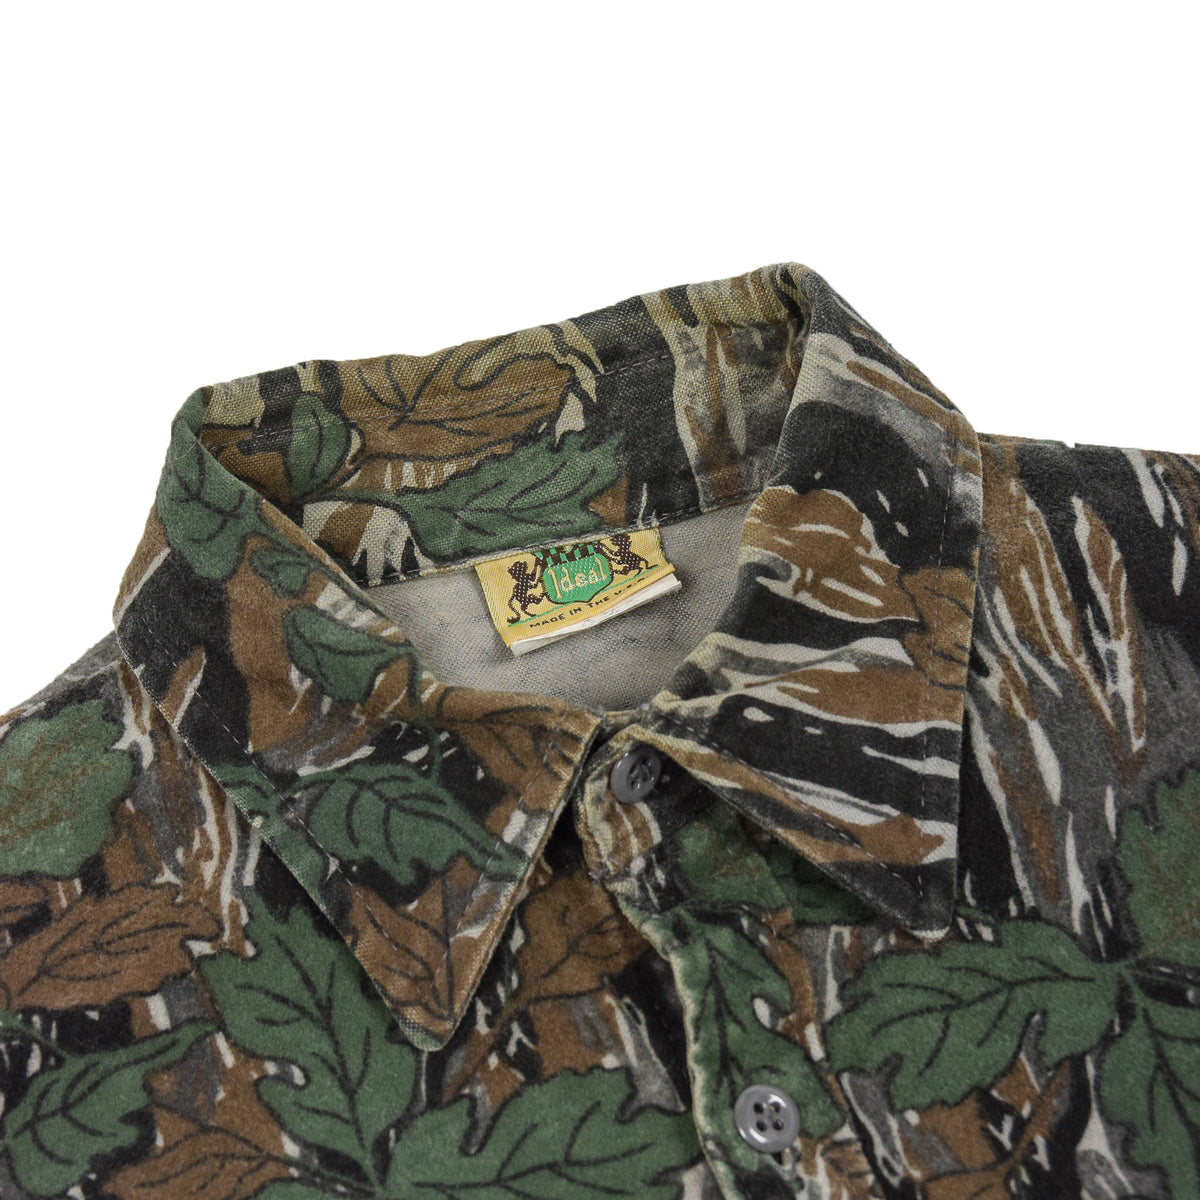 Vintage Ideal Camouflage Hunting Shooting Cotton Long Sleeve Shirt Made in USA M collar